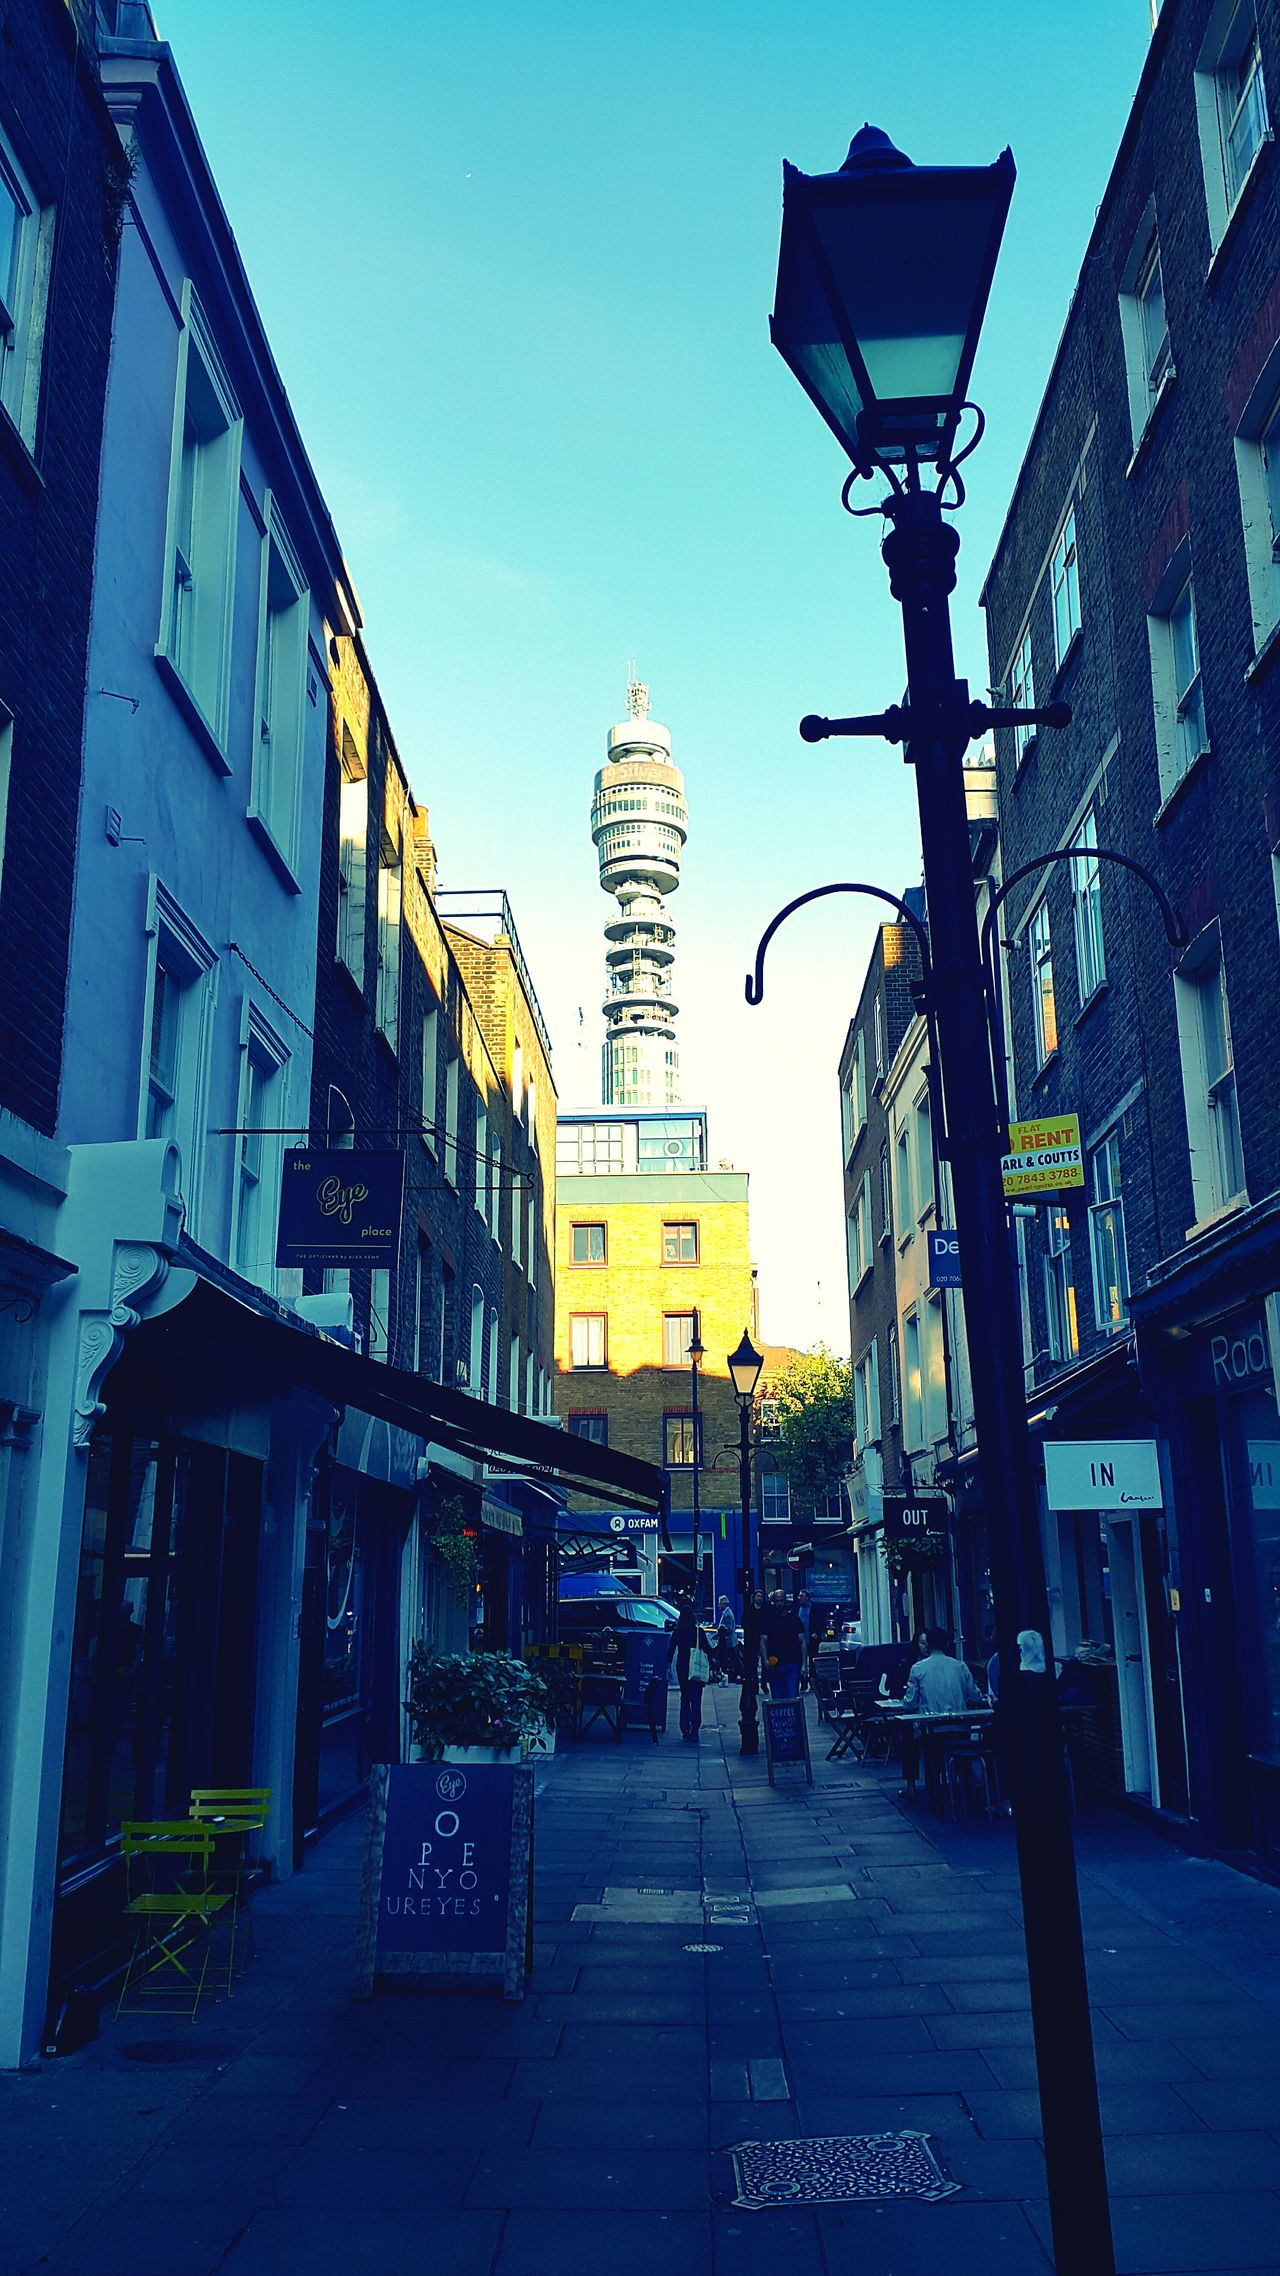 Architecture Street City Built Structure Building Exterior Clear Sky City Street Tower Sky Tall - High City Life BT Tower BT Tower London